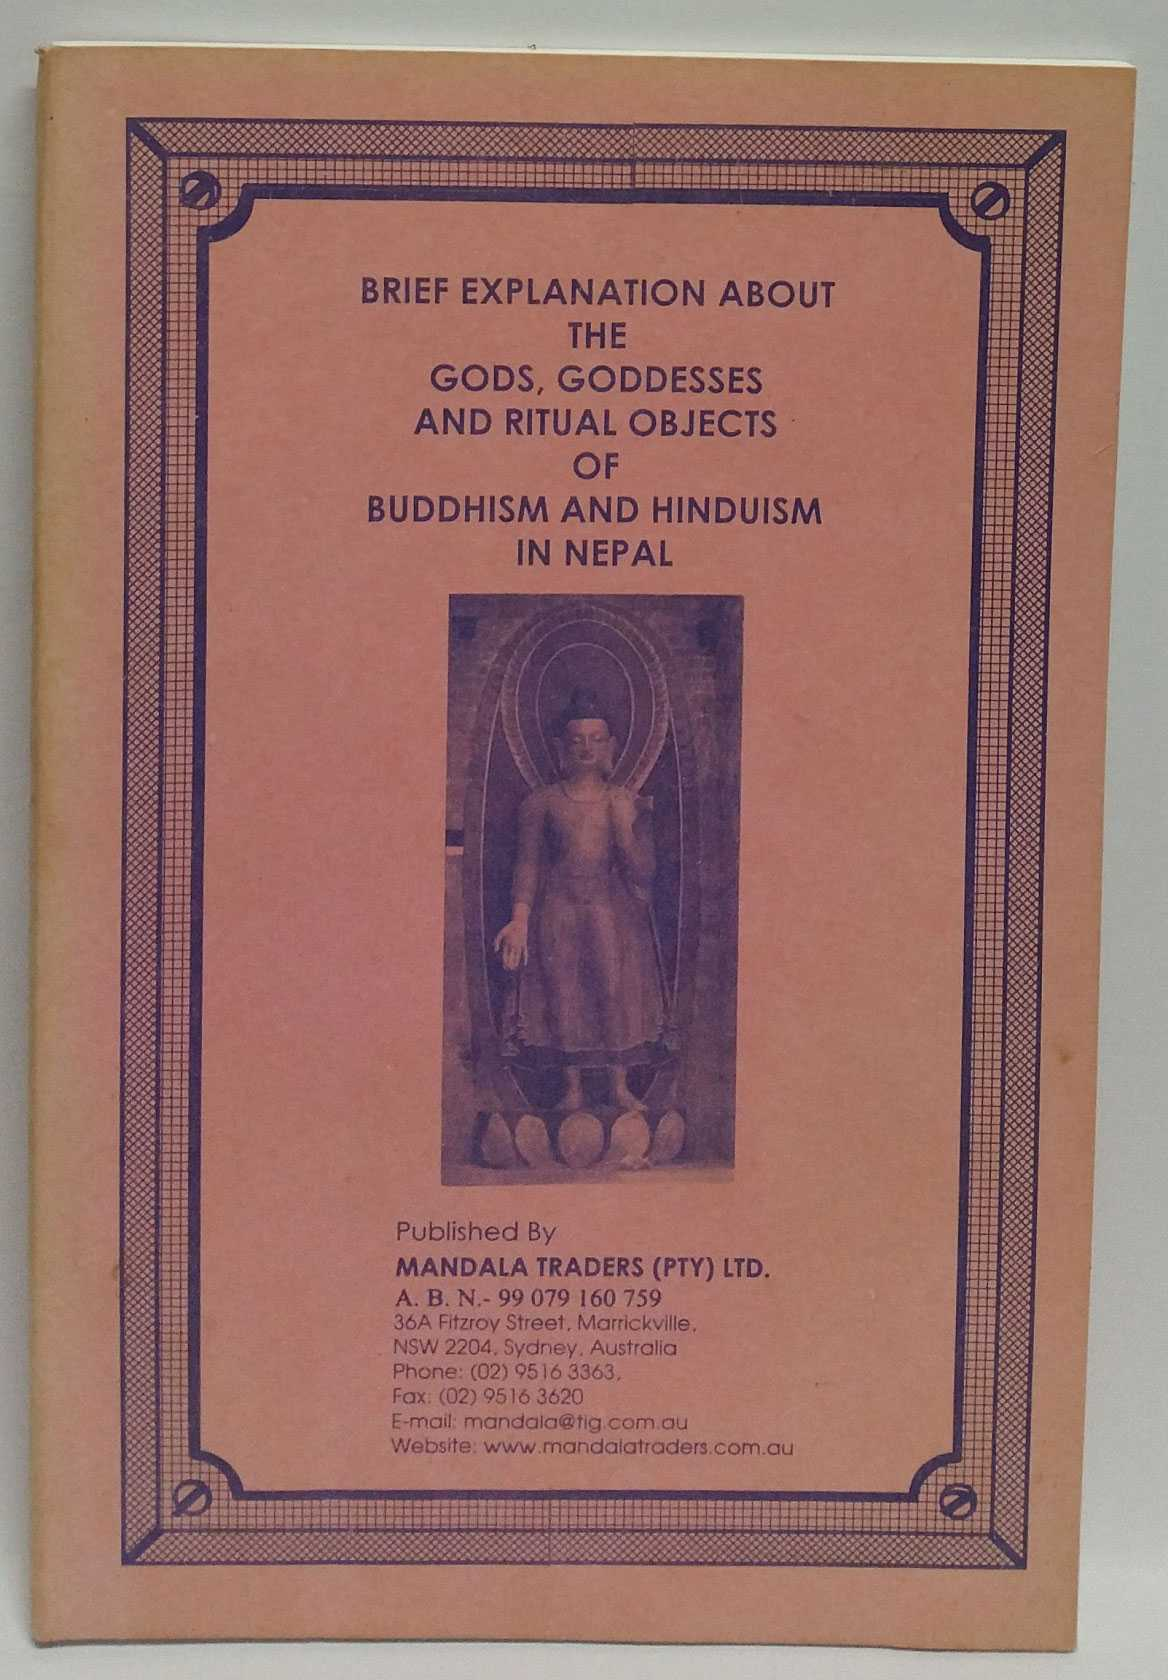 Brief Explanation About The Gods, Goddesses And Ritual Objects Of Buddhism And Hinduism In Nepal, Mandala Traders